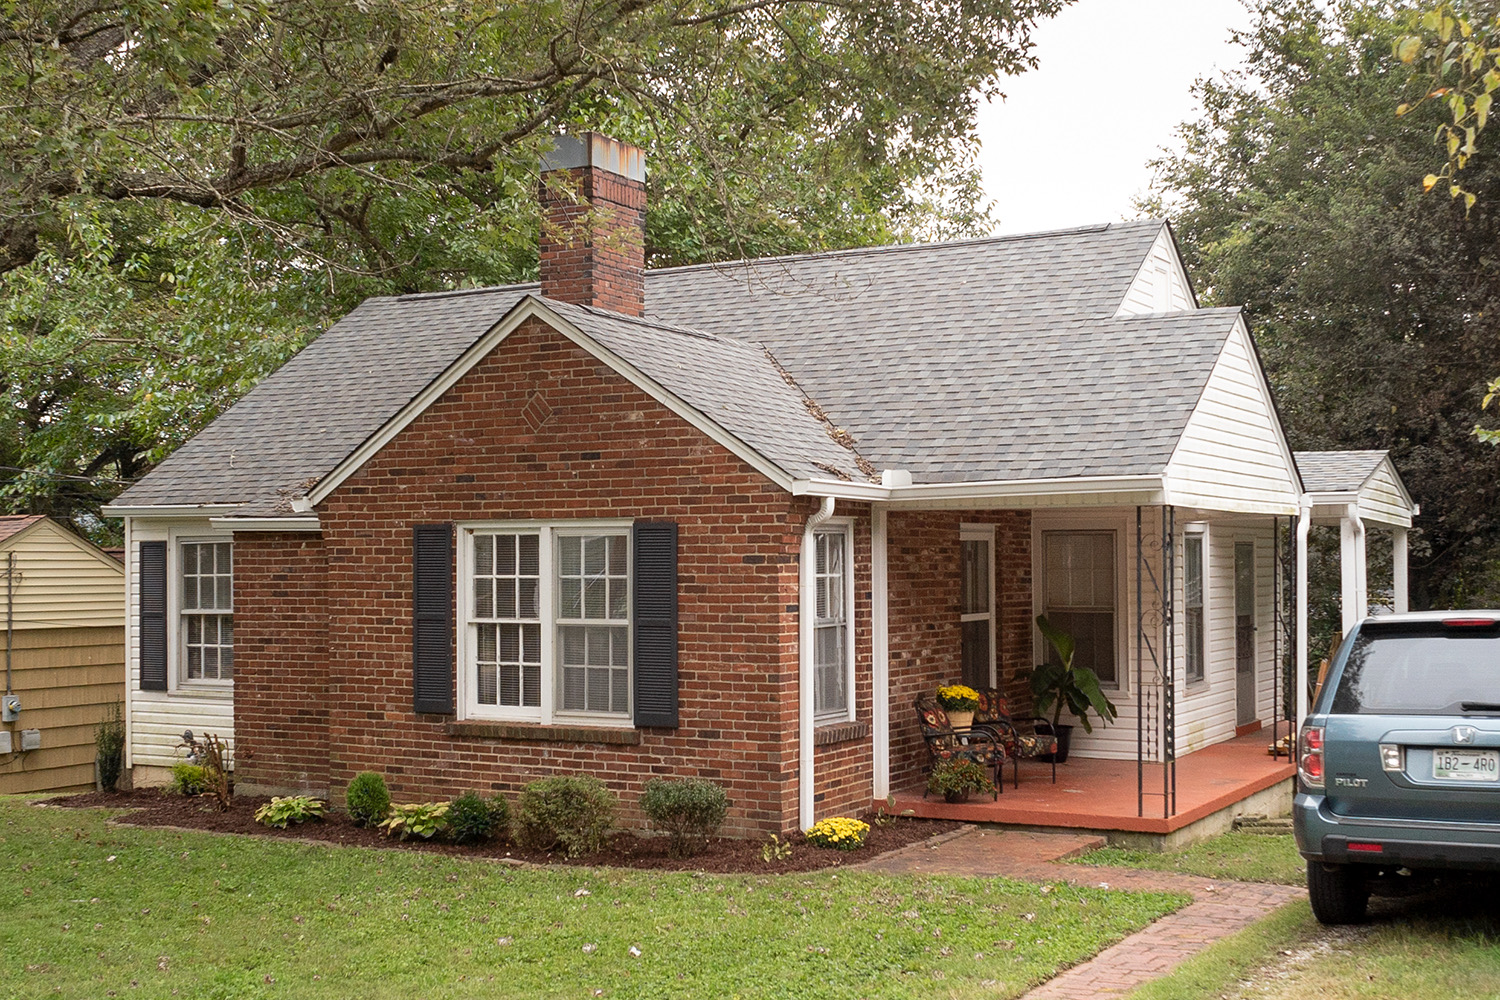 314 8th Ave, Columbia, TN SOLD - Quaint, well kept, updated home in much sought after Riverside.